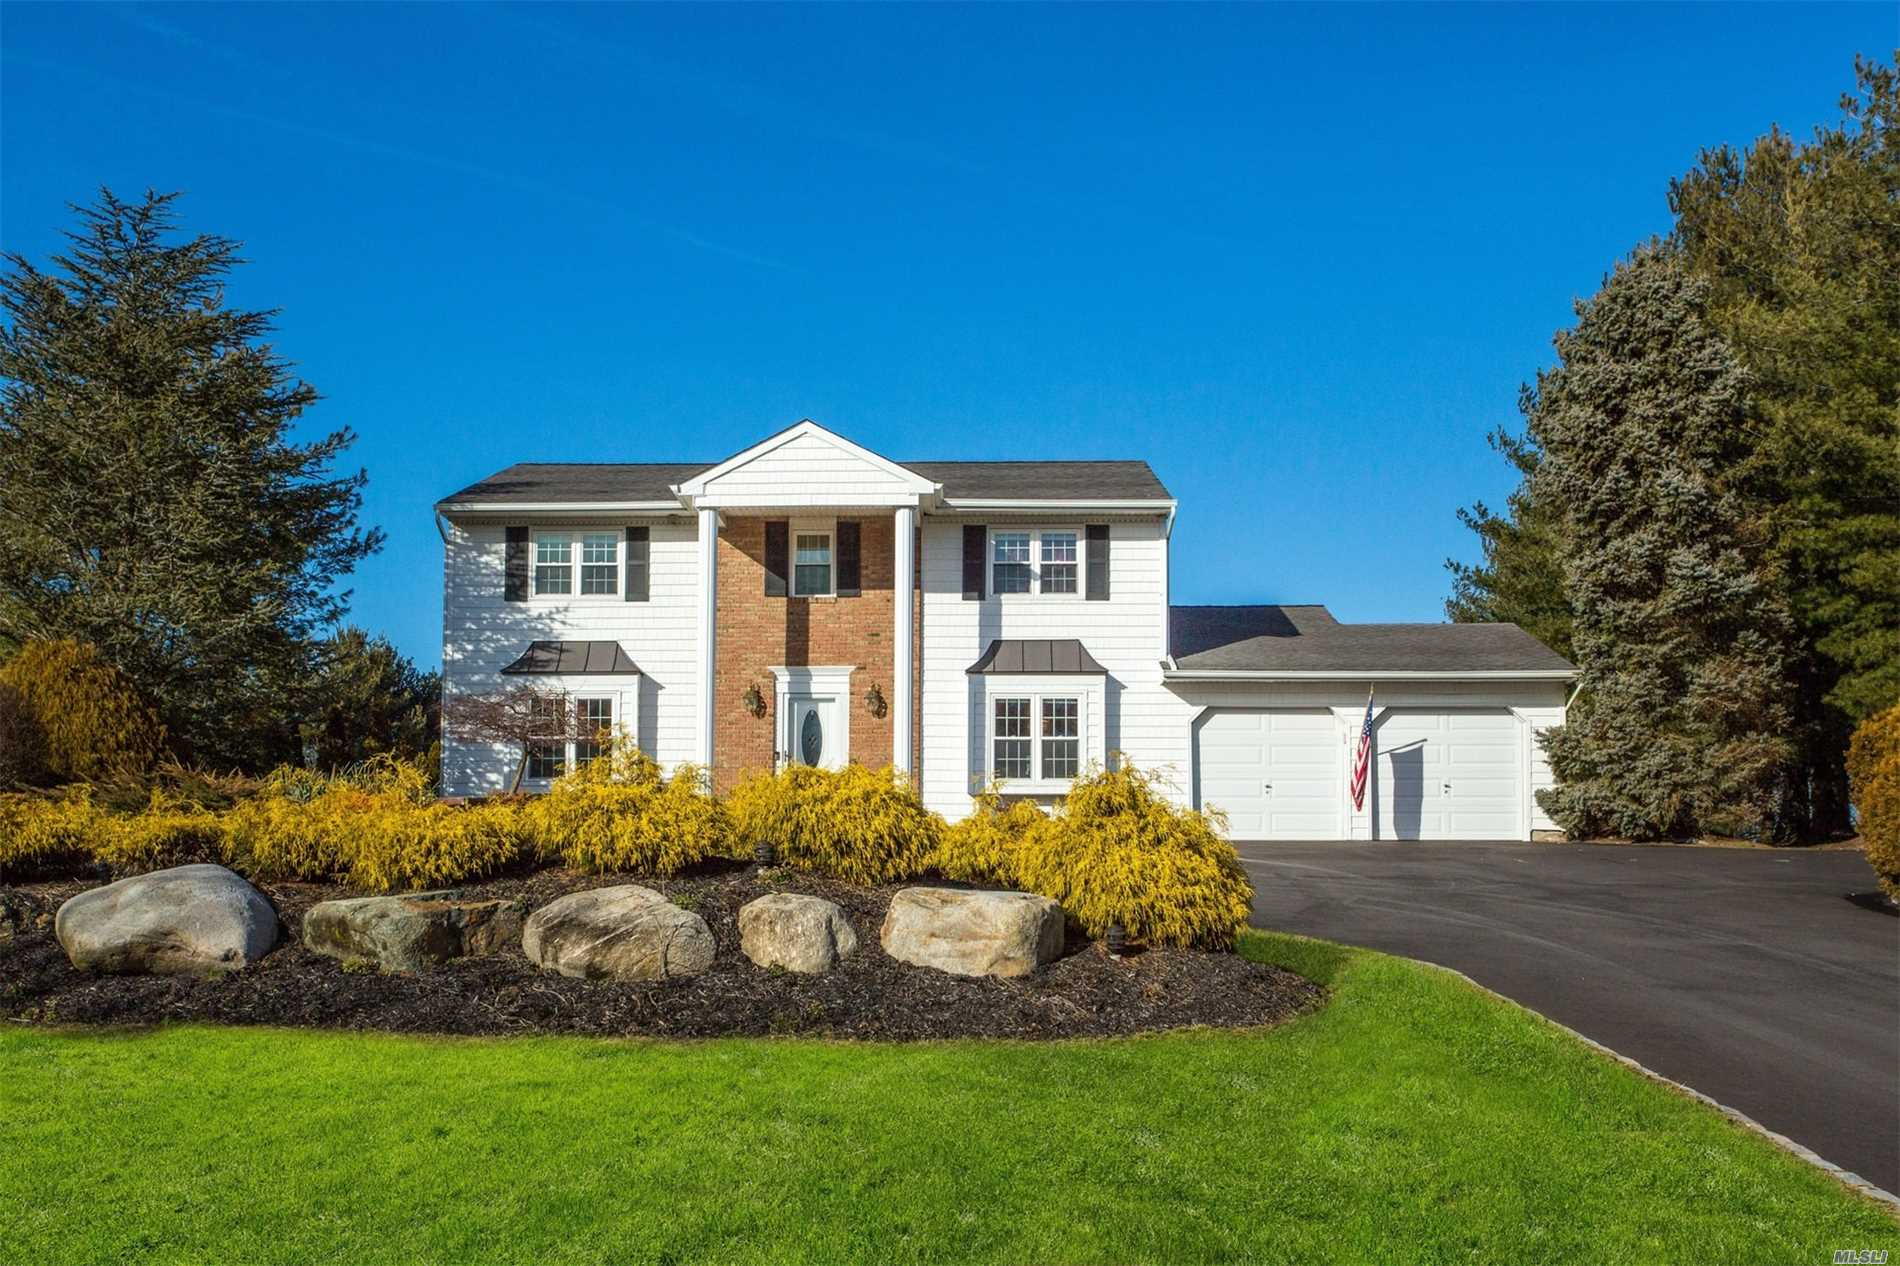 New To Market! Beautiful Colonial Set On A Picturesque Acre At A Great Location. Updated And Ready To Enjoy With Heated In-Ground Pool And Tennis Court/Full Basketball Court.